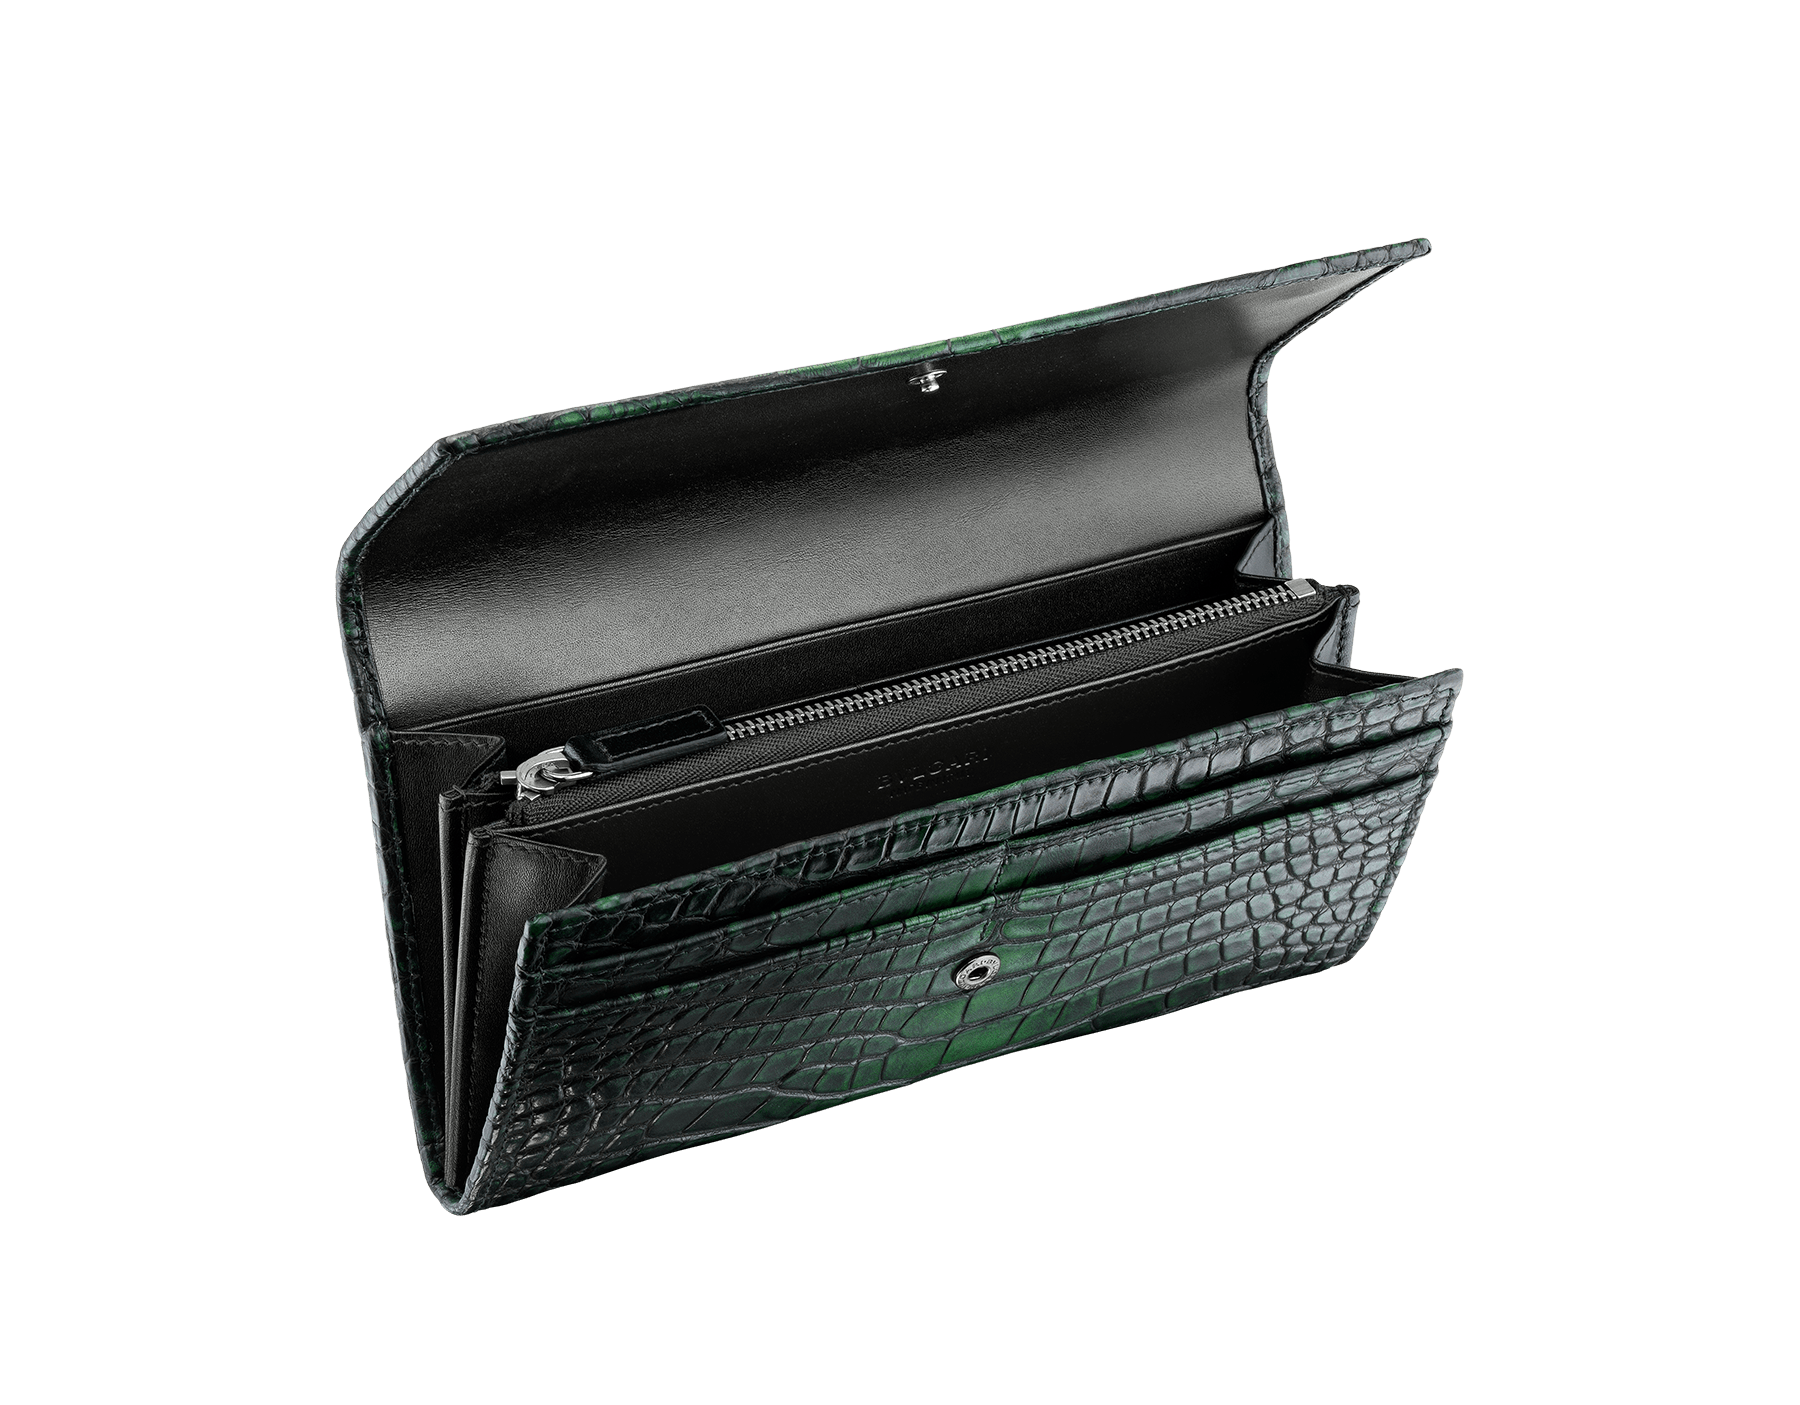 Man wallet pochette in Jungle green alligator skin and black smooth calf leather, with brass dark ruthenium plated hardware featuring the Bulgari-Bulgari motif. 38622 image 2